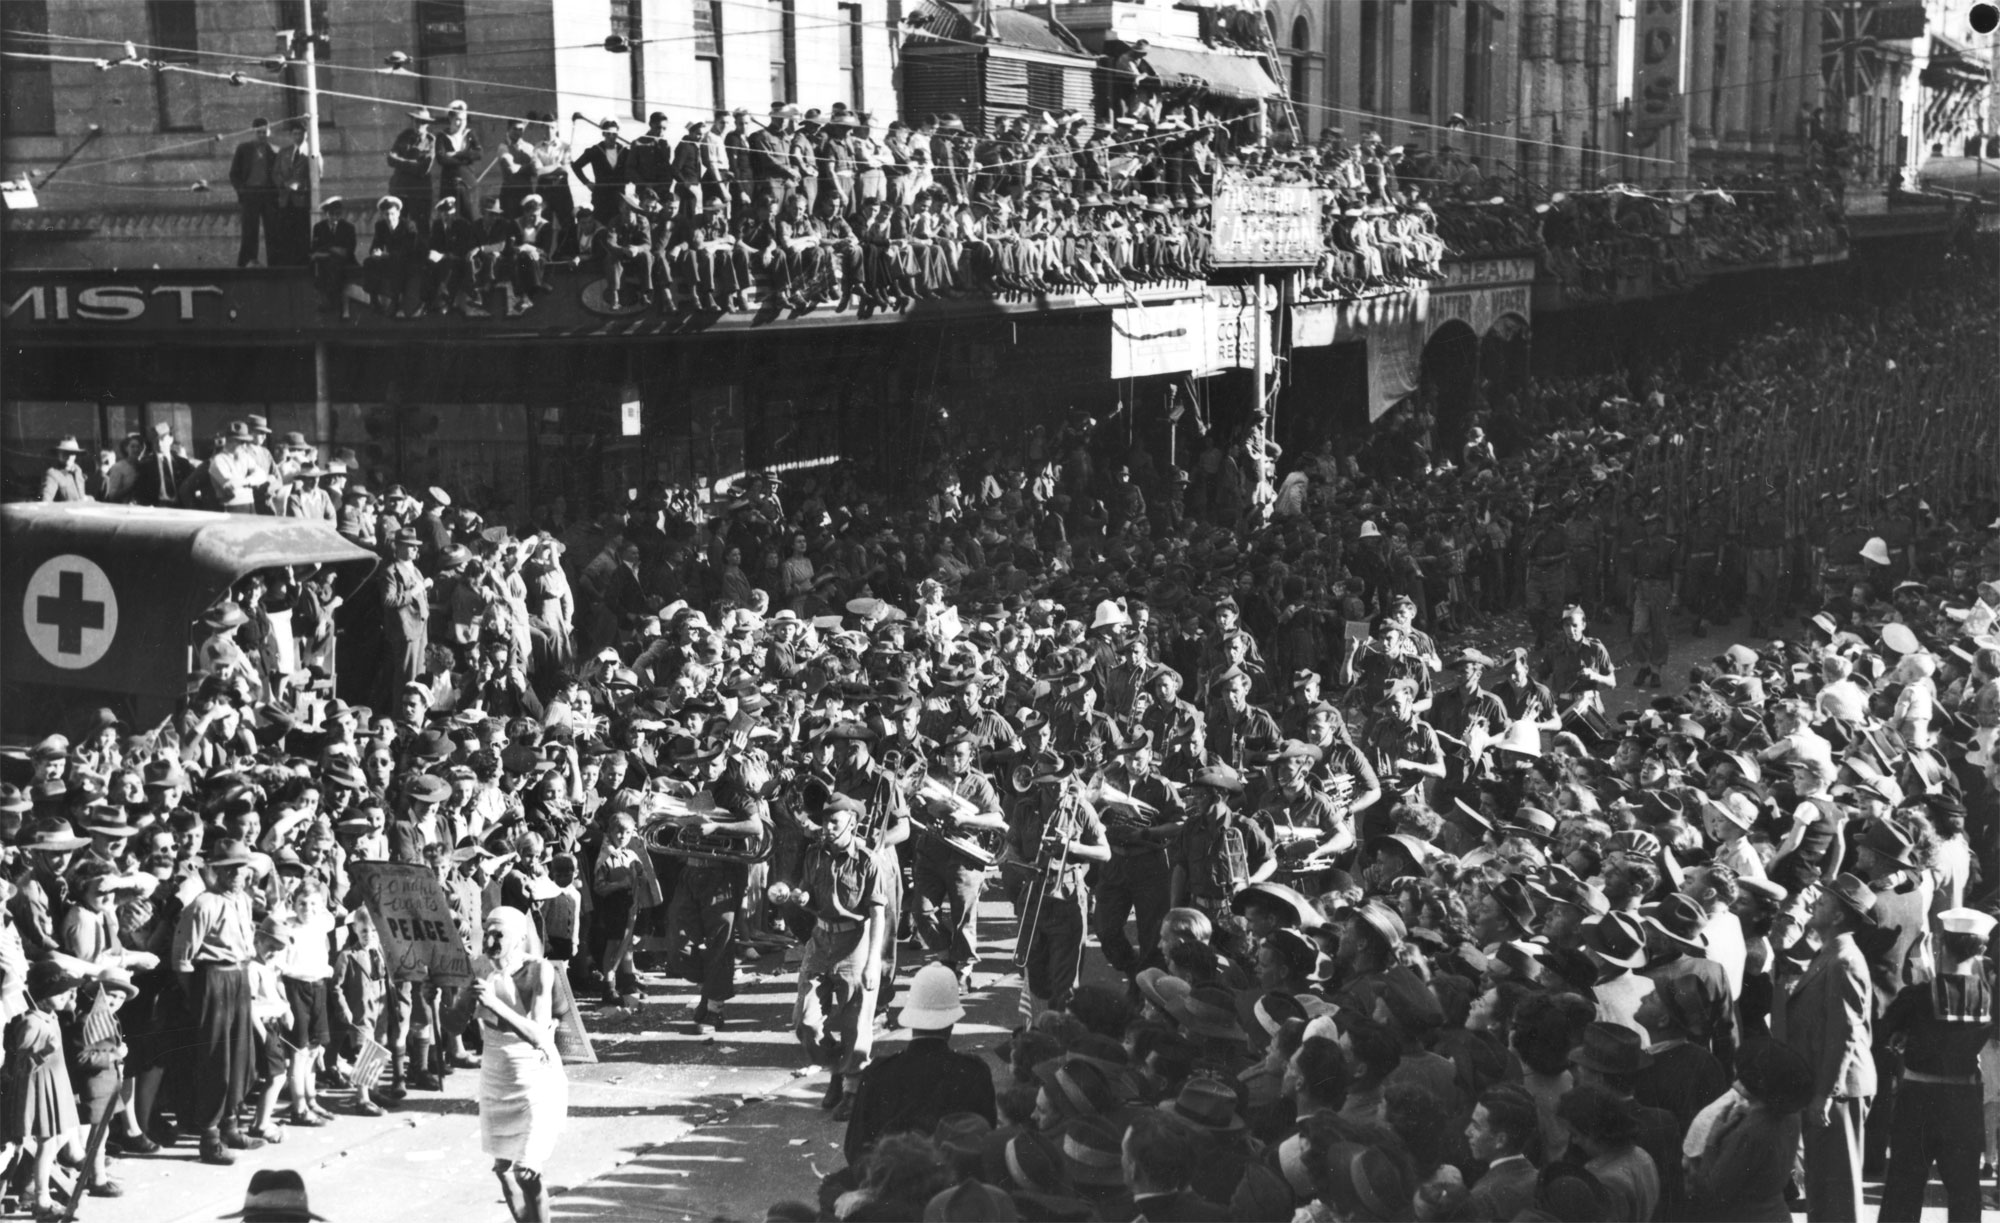 Army band leads a procession of soldiers on VJ Day in Brisbane, 1945